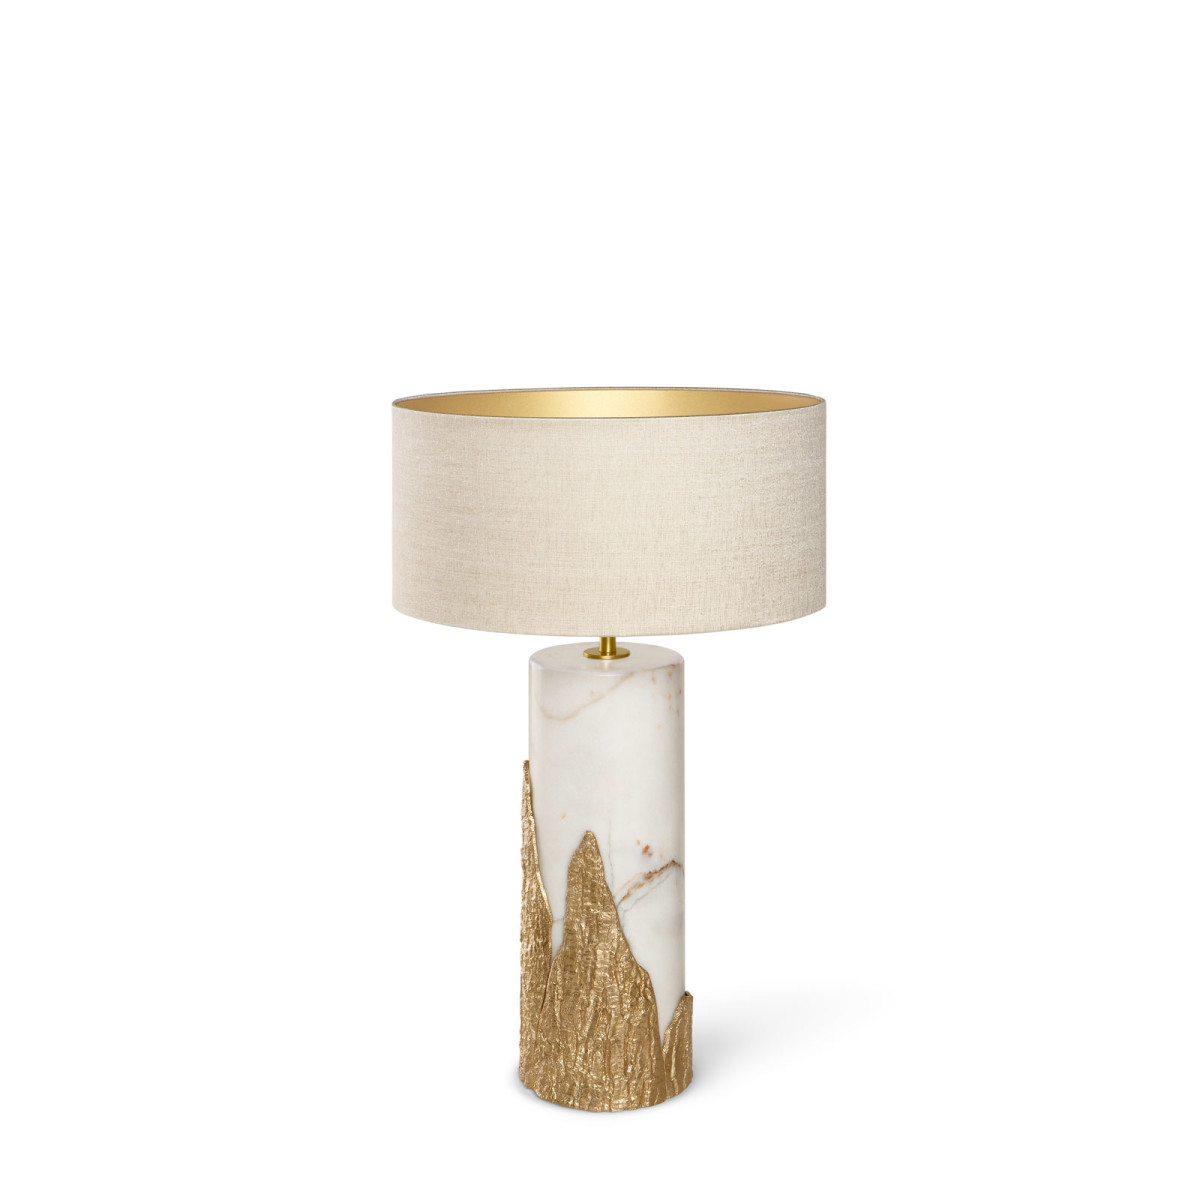 Marvelous Table Lamp. Amber